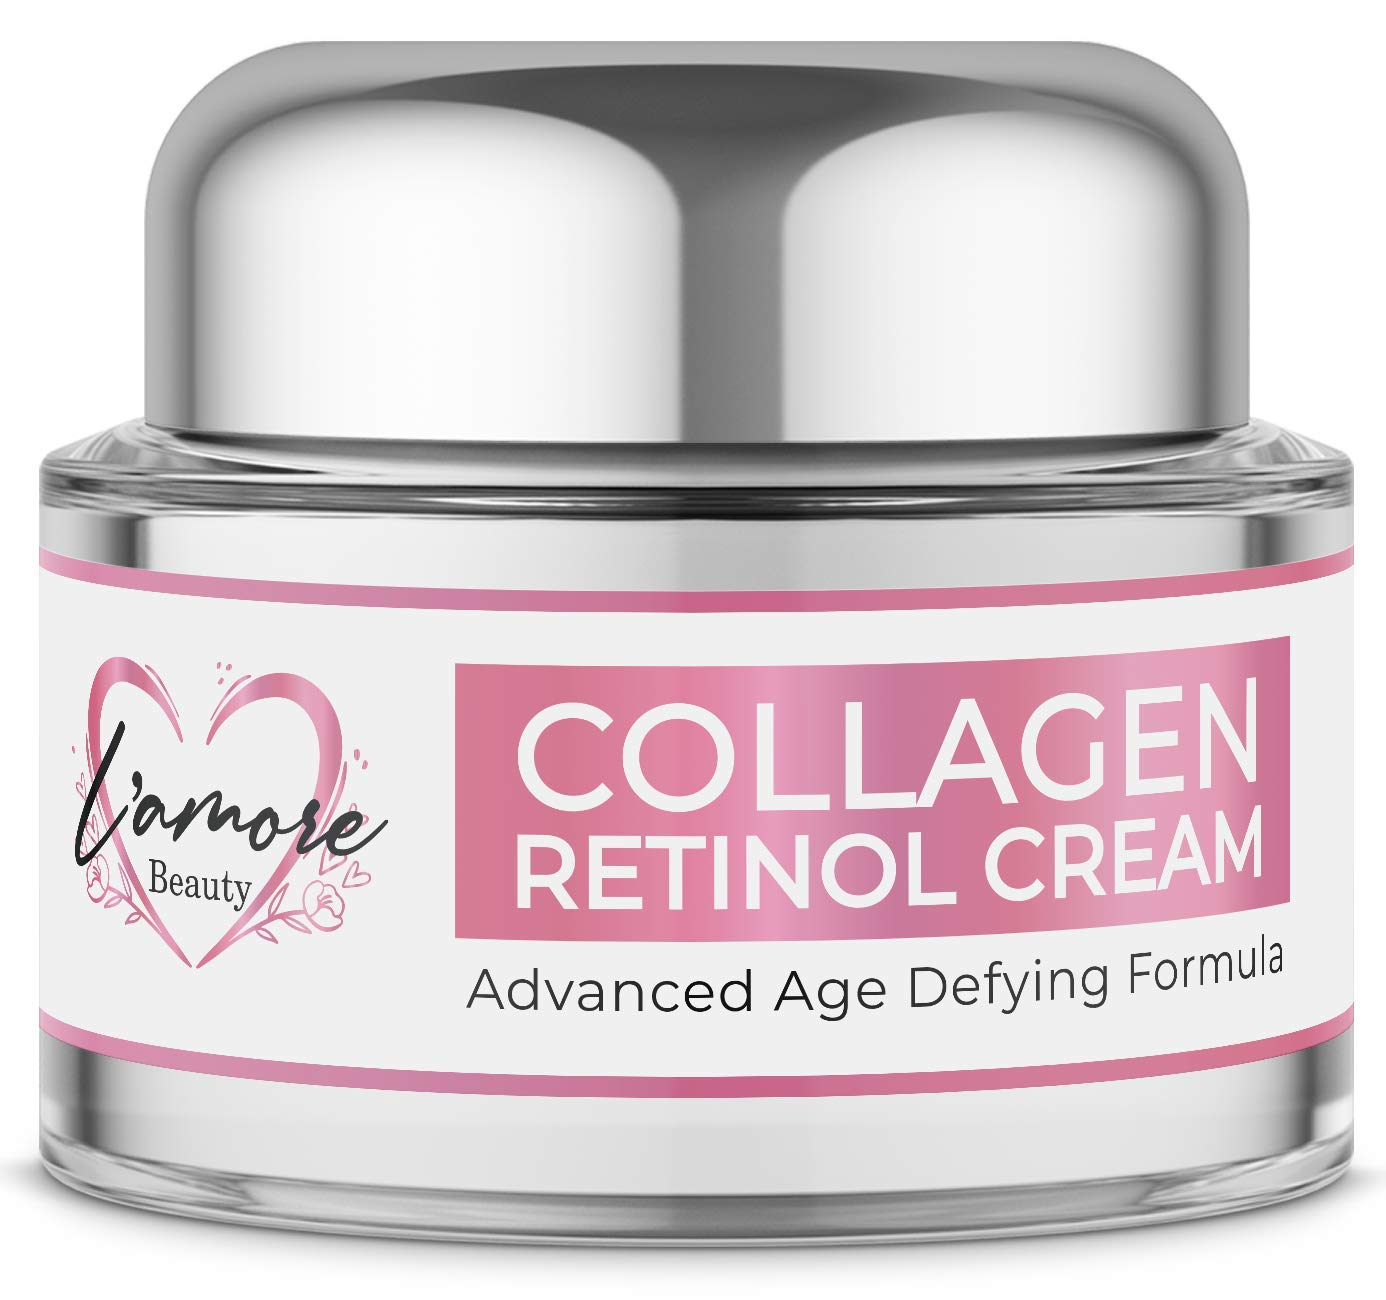 Anti Aging Retinol Face Cream with Collagen — Powerful Day & Night Anti Wrinkle Moisturizer for Women — Natural & Cruelty Free